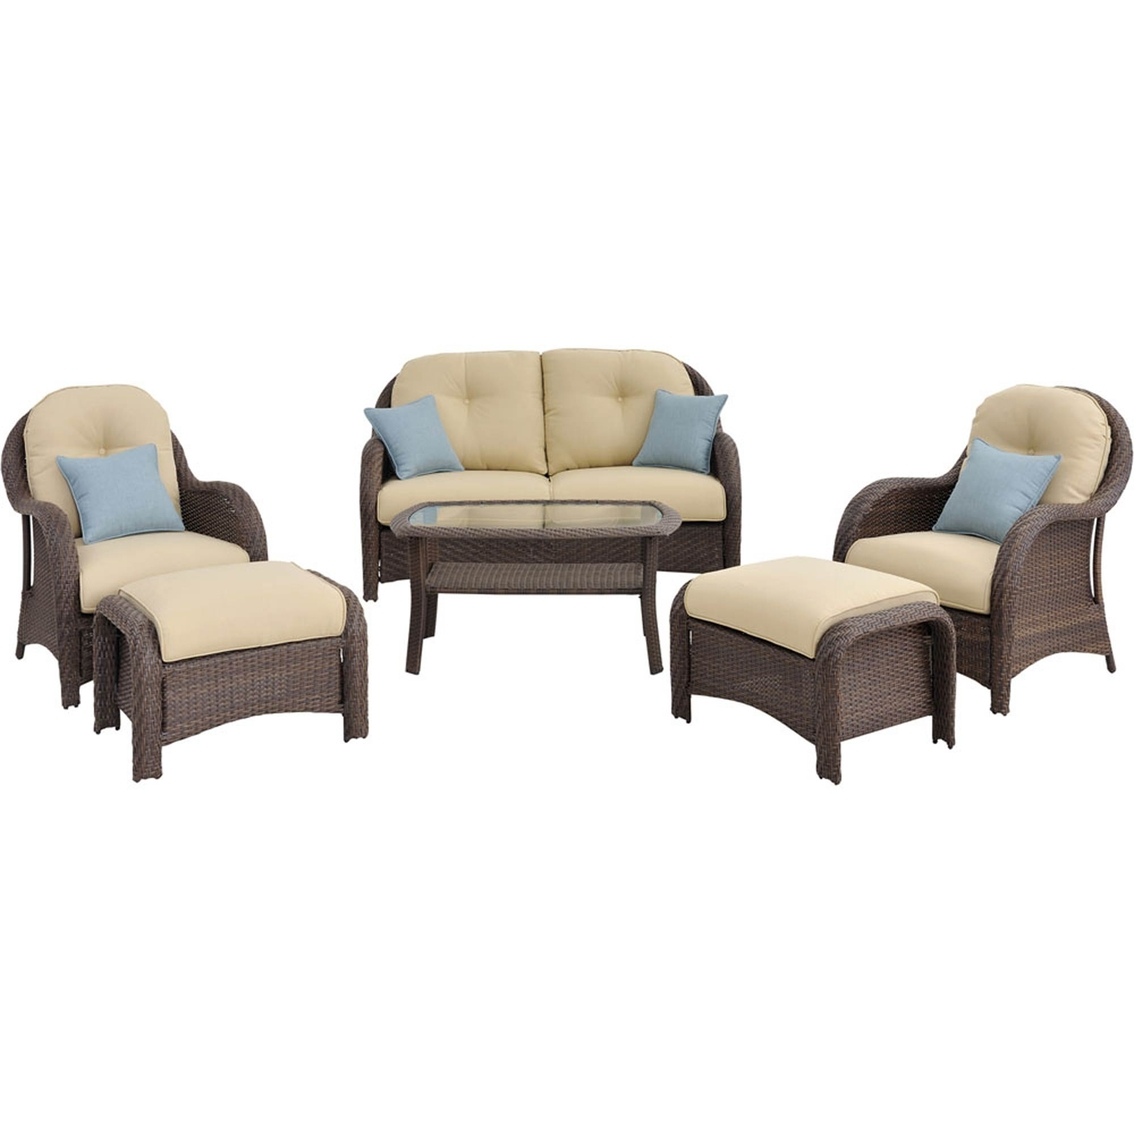 Deep Seating Patio Chairs Hanover Outdoor Furniture Newport Wicker 6 Pc Deep